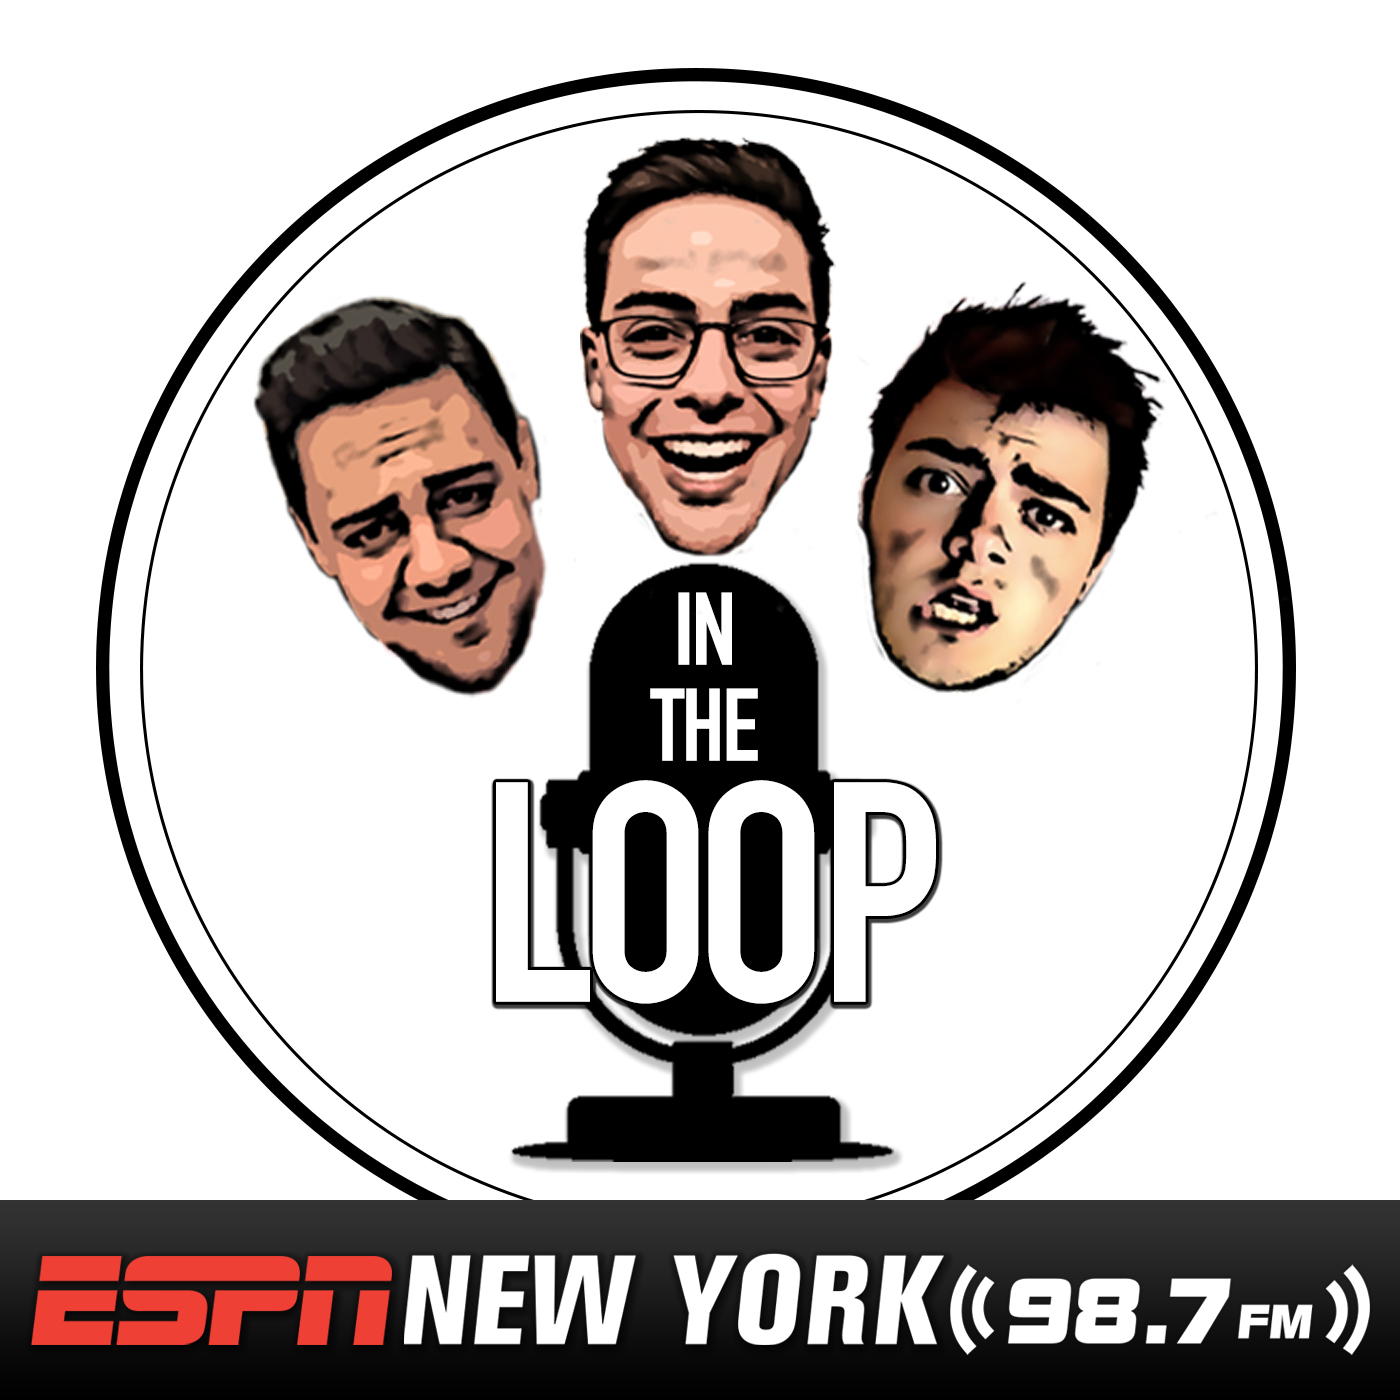 ESPN New York: In the Loop